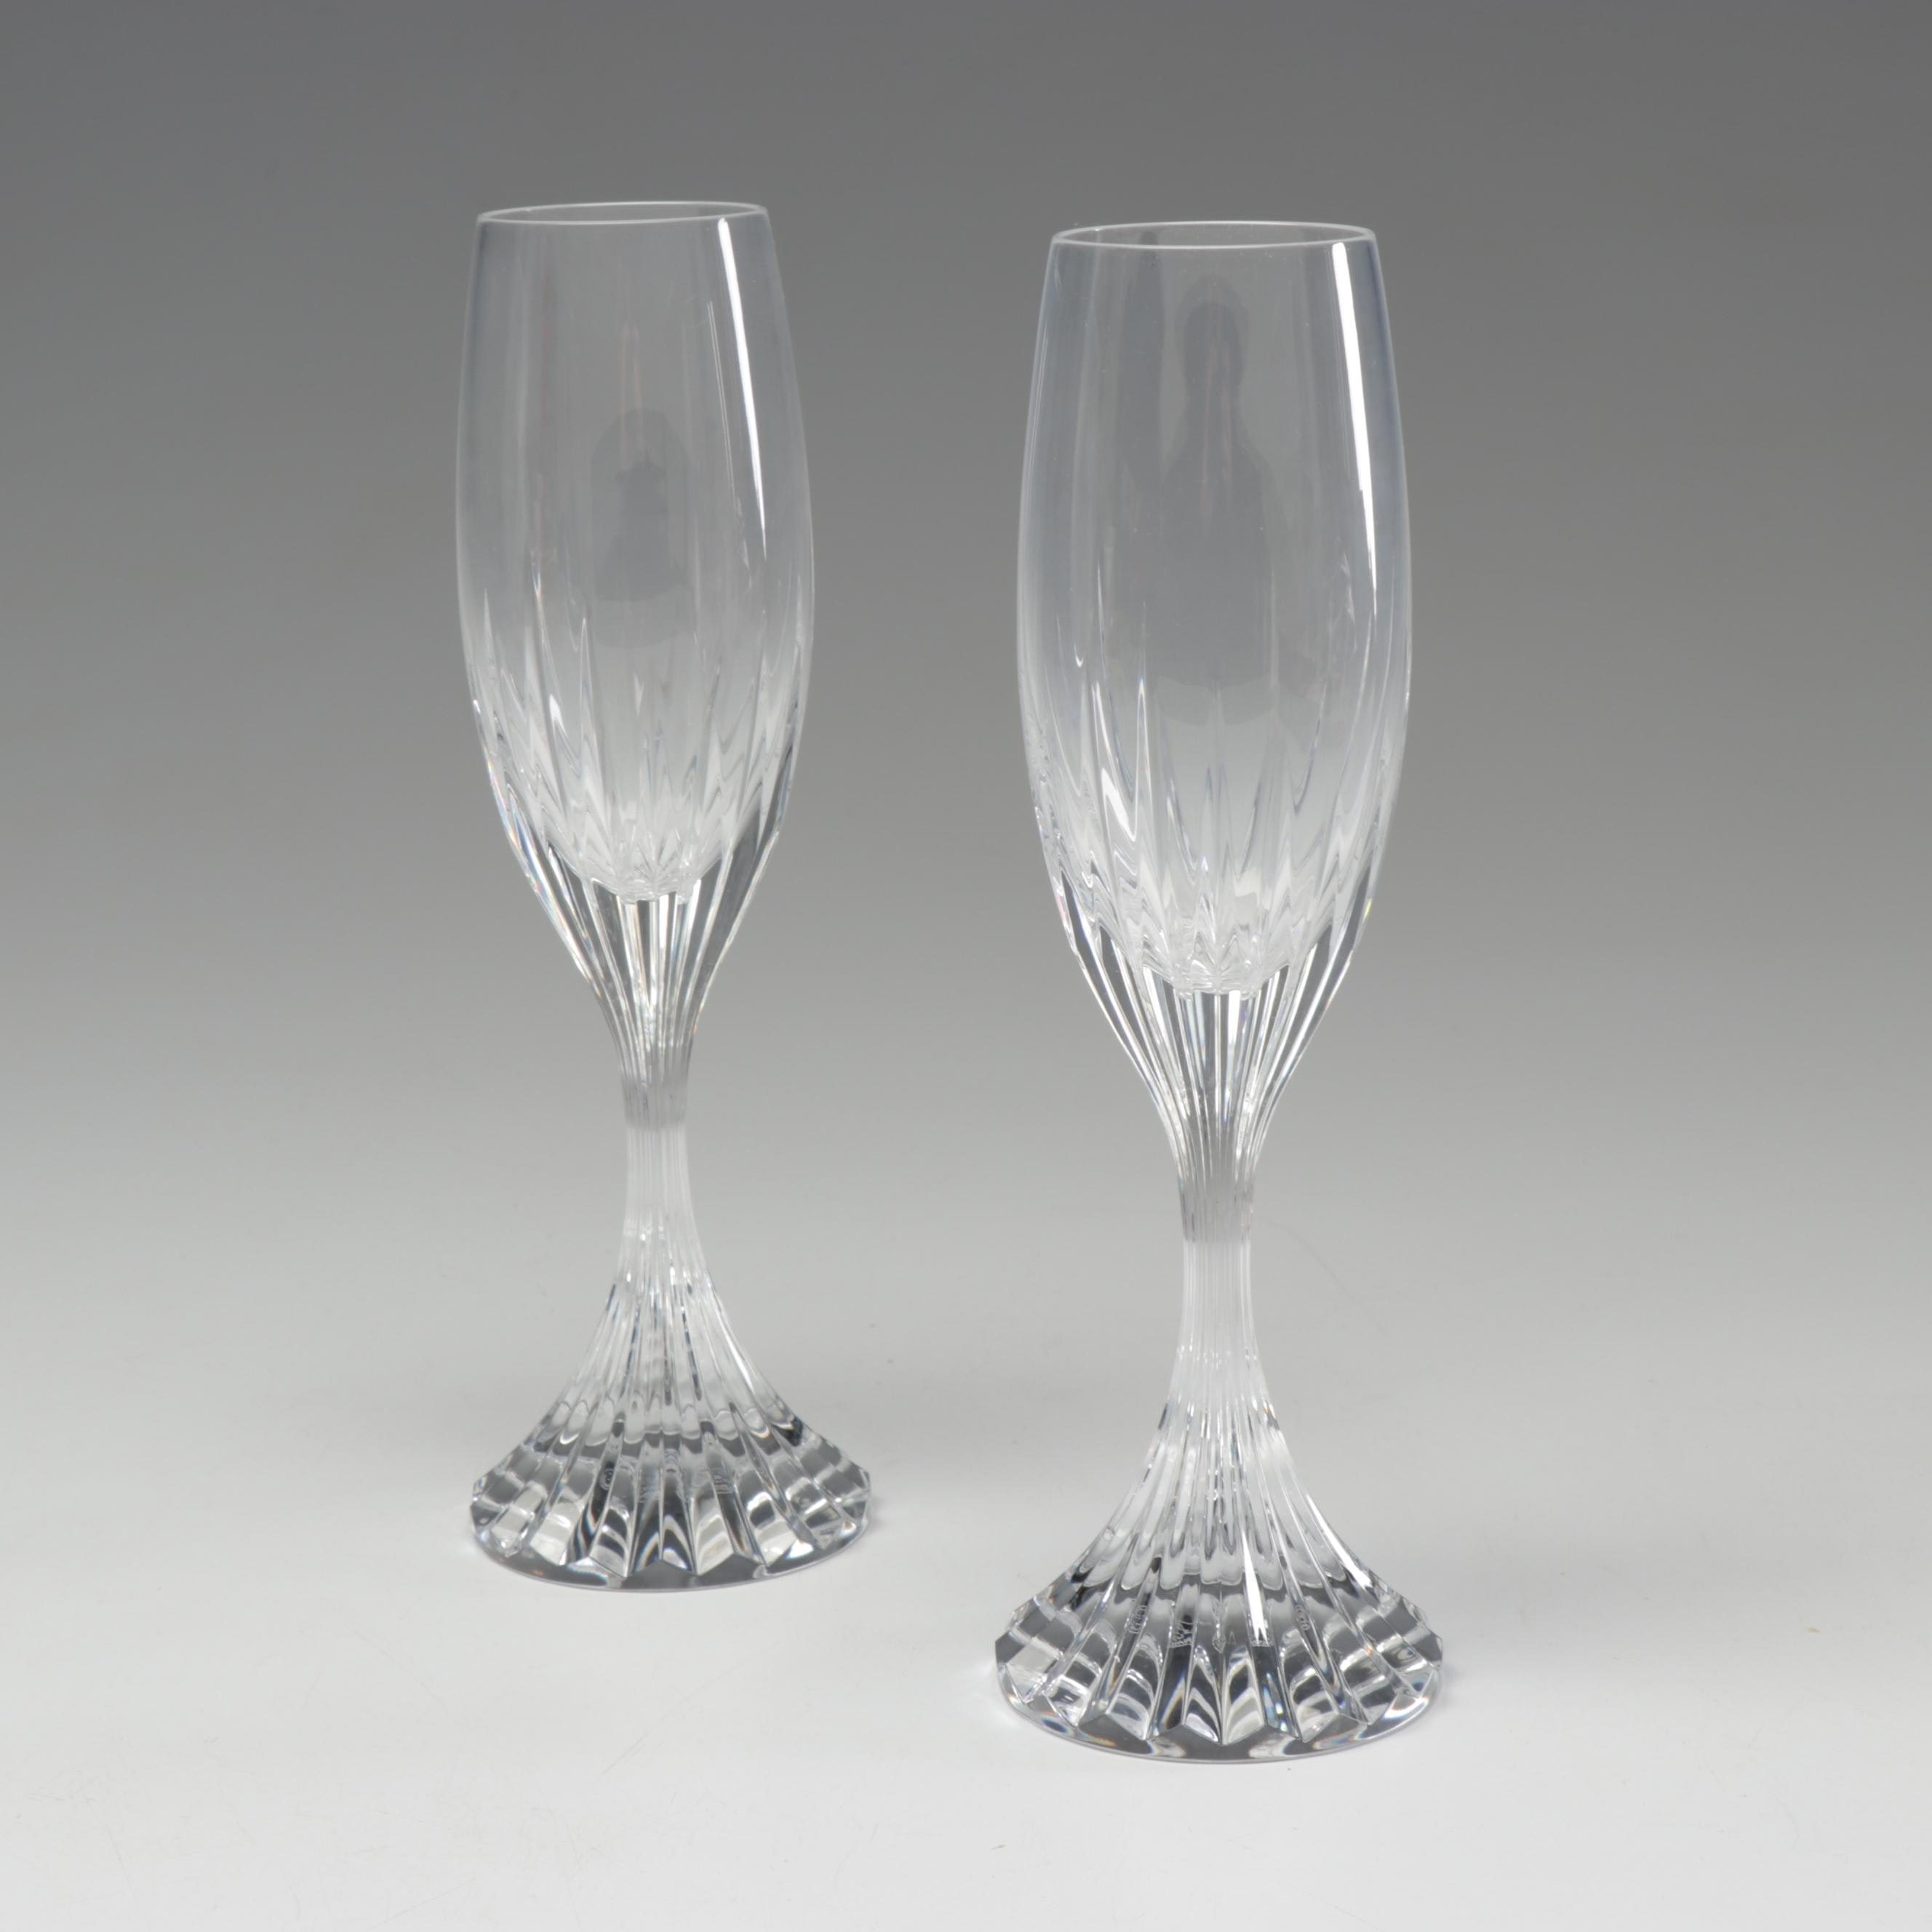 Pair of Baccarat Crystal Flutes